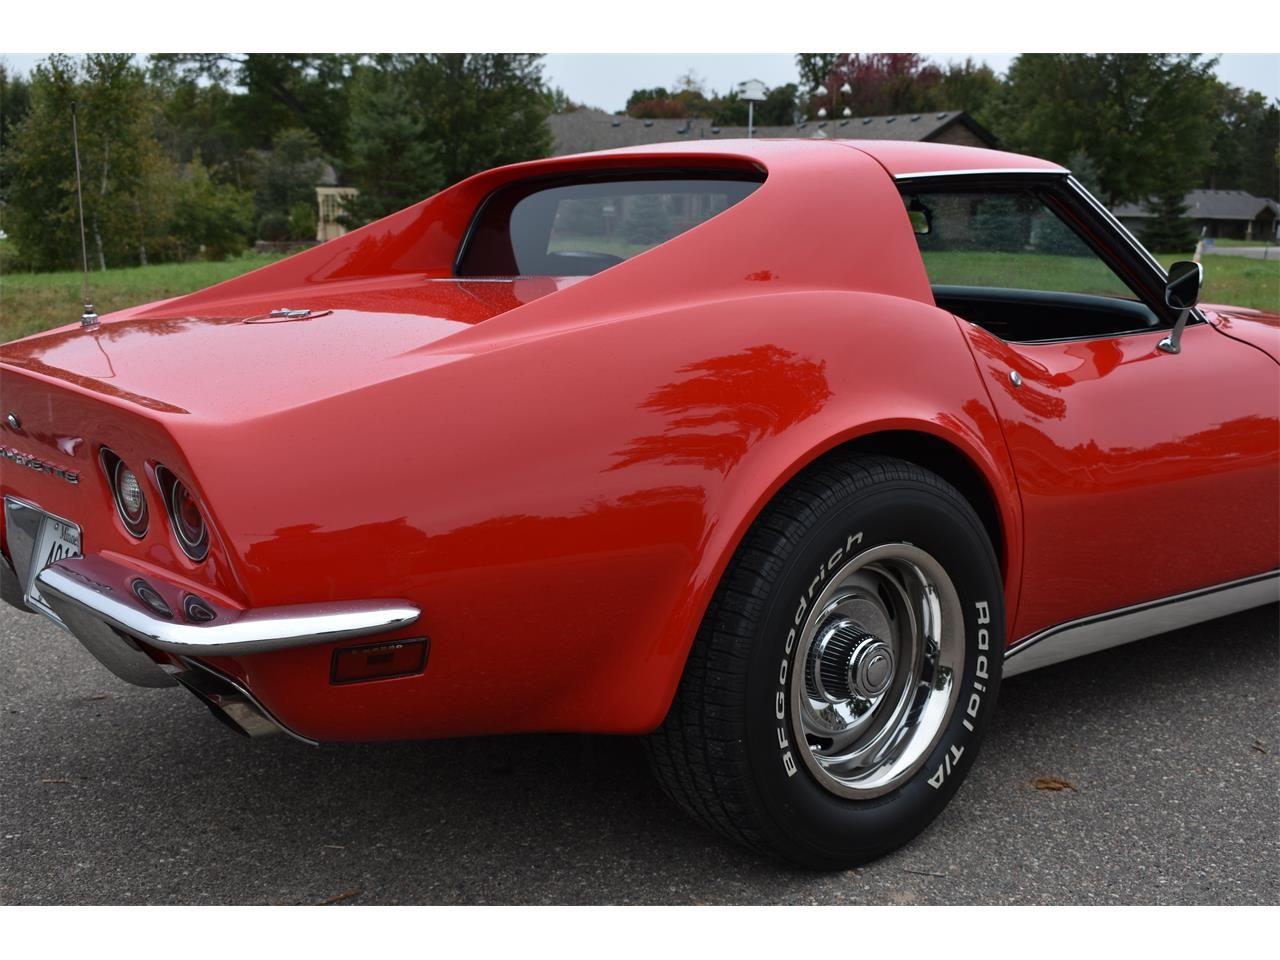 Large Picture of Classic '72 Corvette located in Minnesota - $27,000.00 Offered by a Private Seller - OMCE